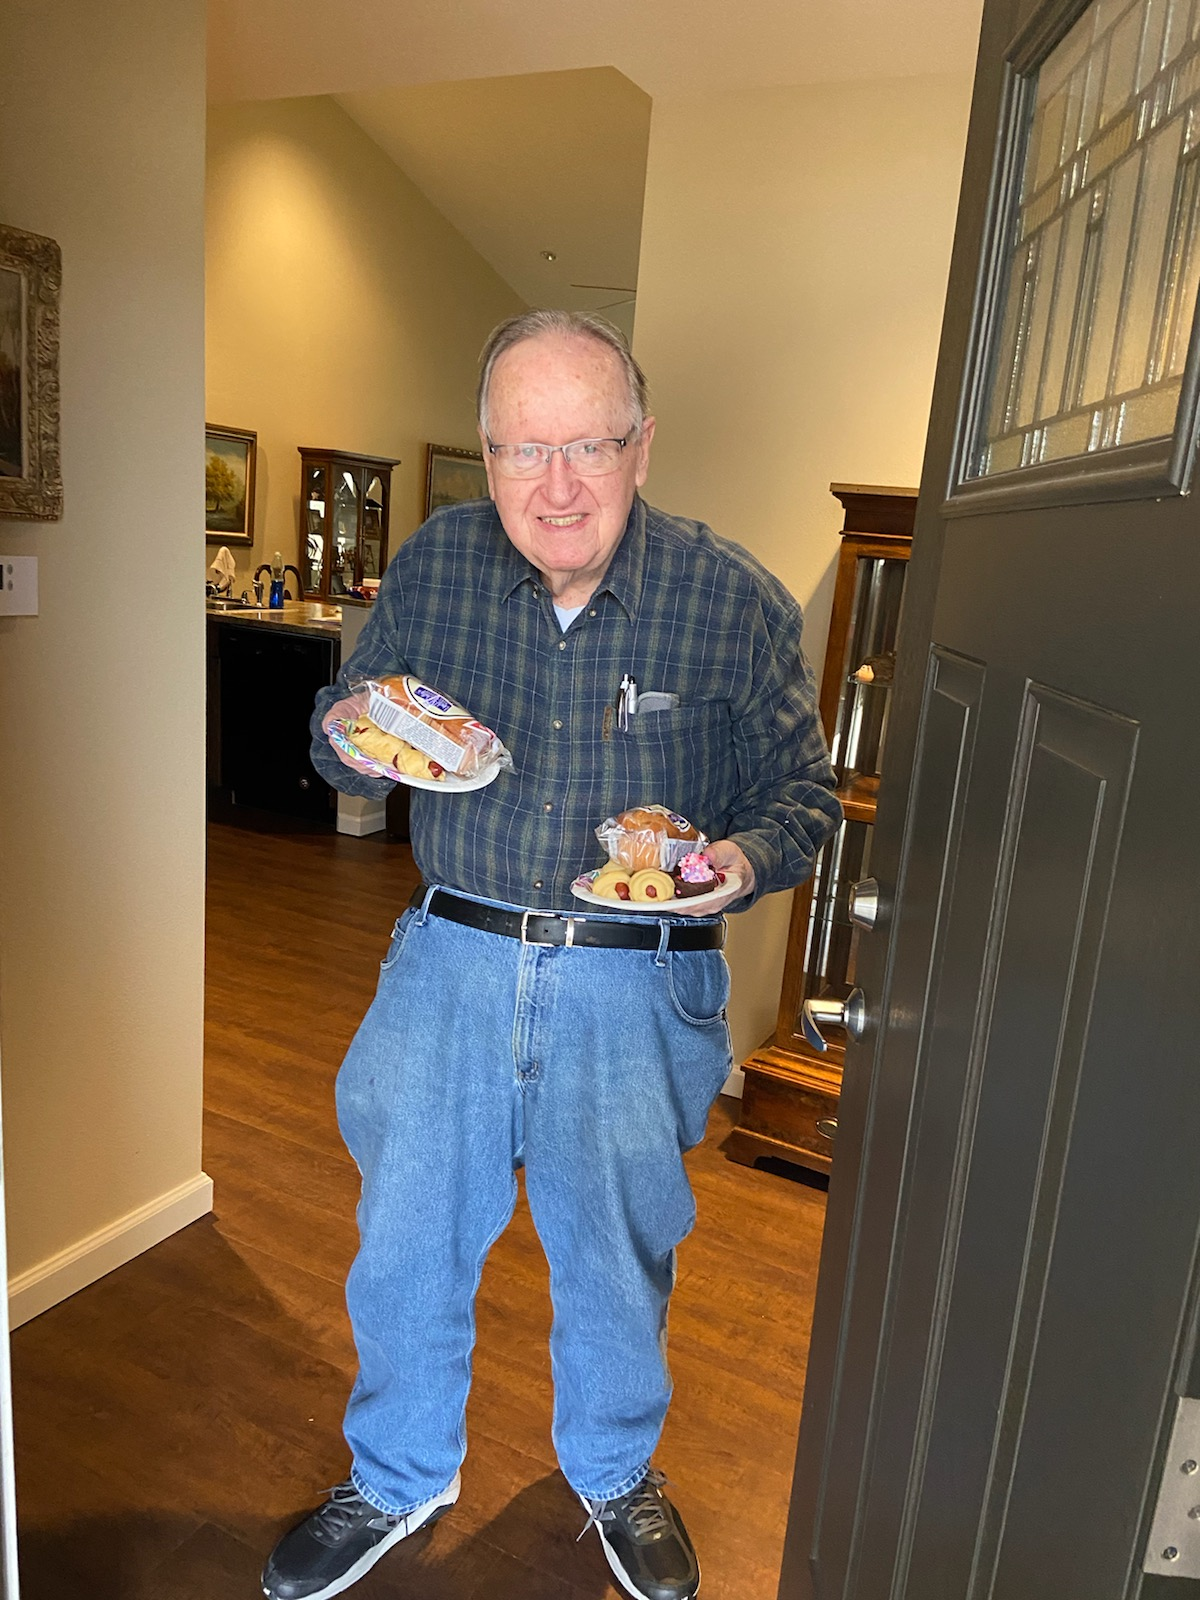 Heritage Hospice provides breakfast to resident David G. in his home.